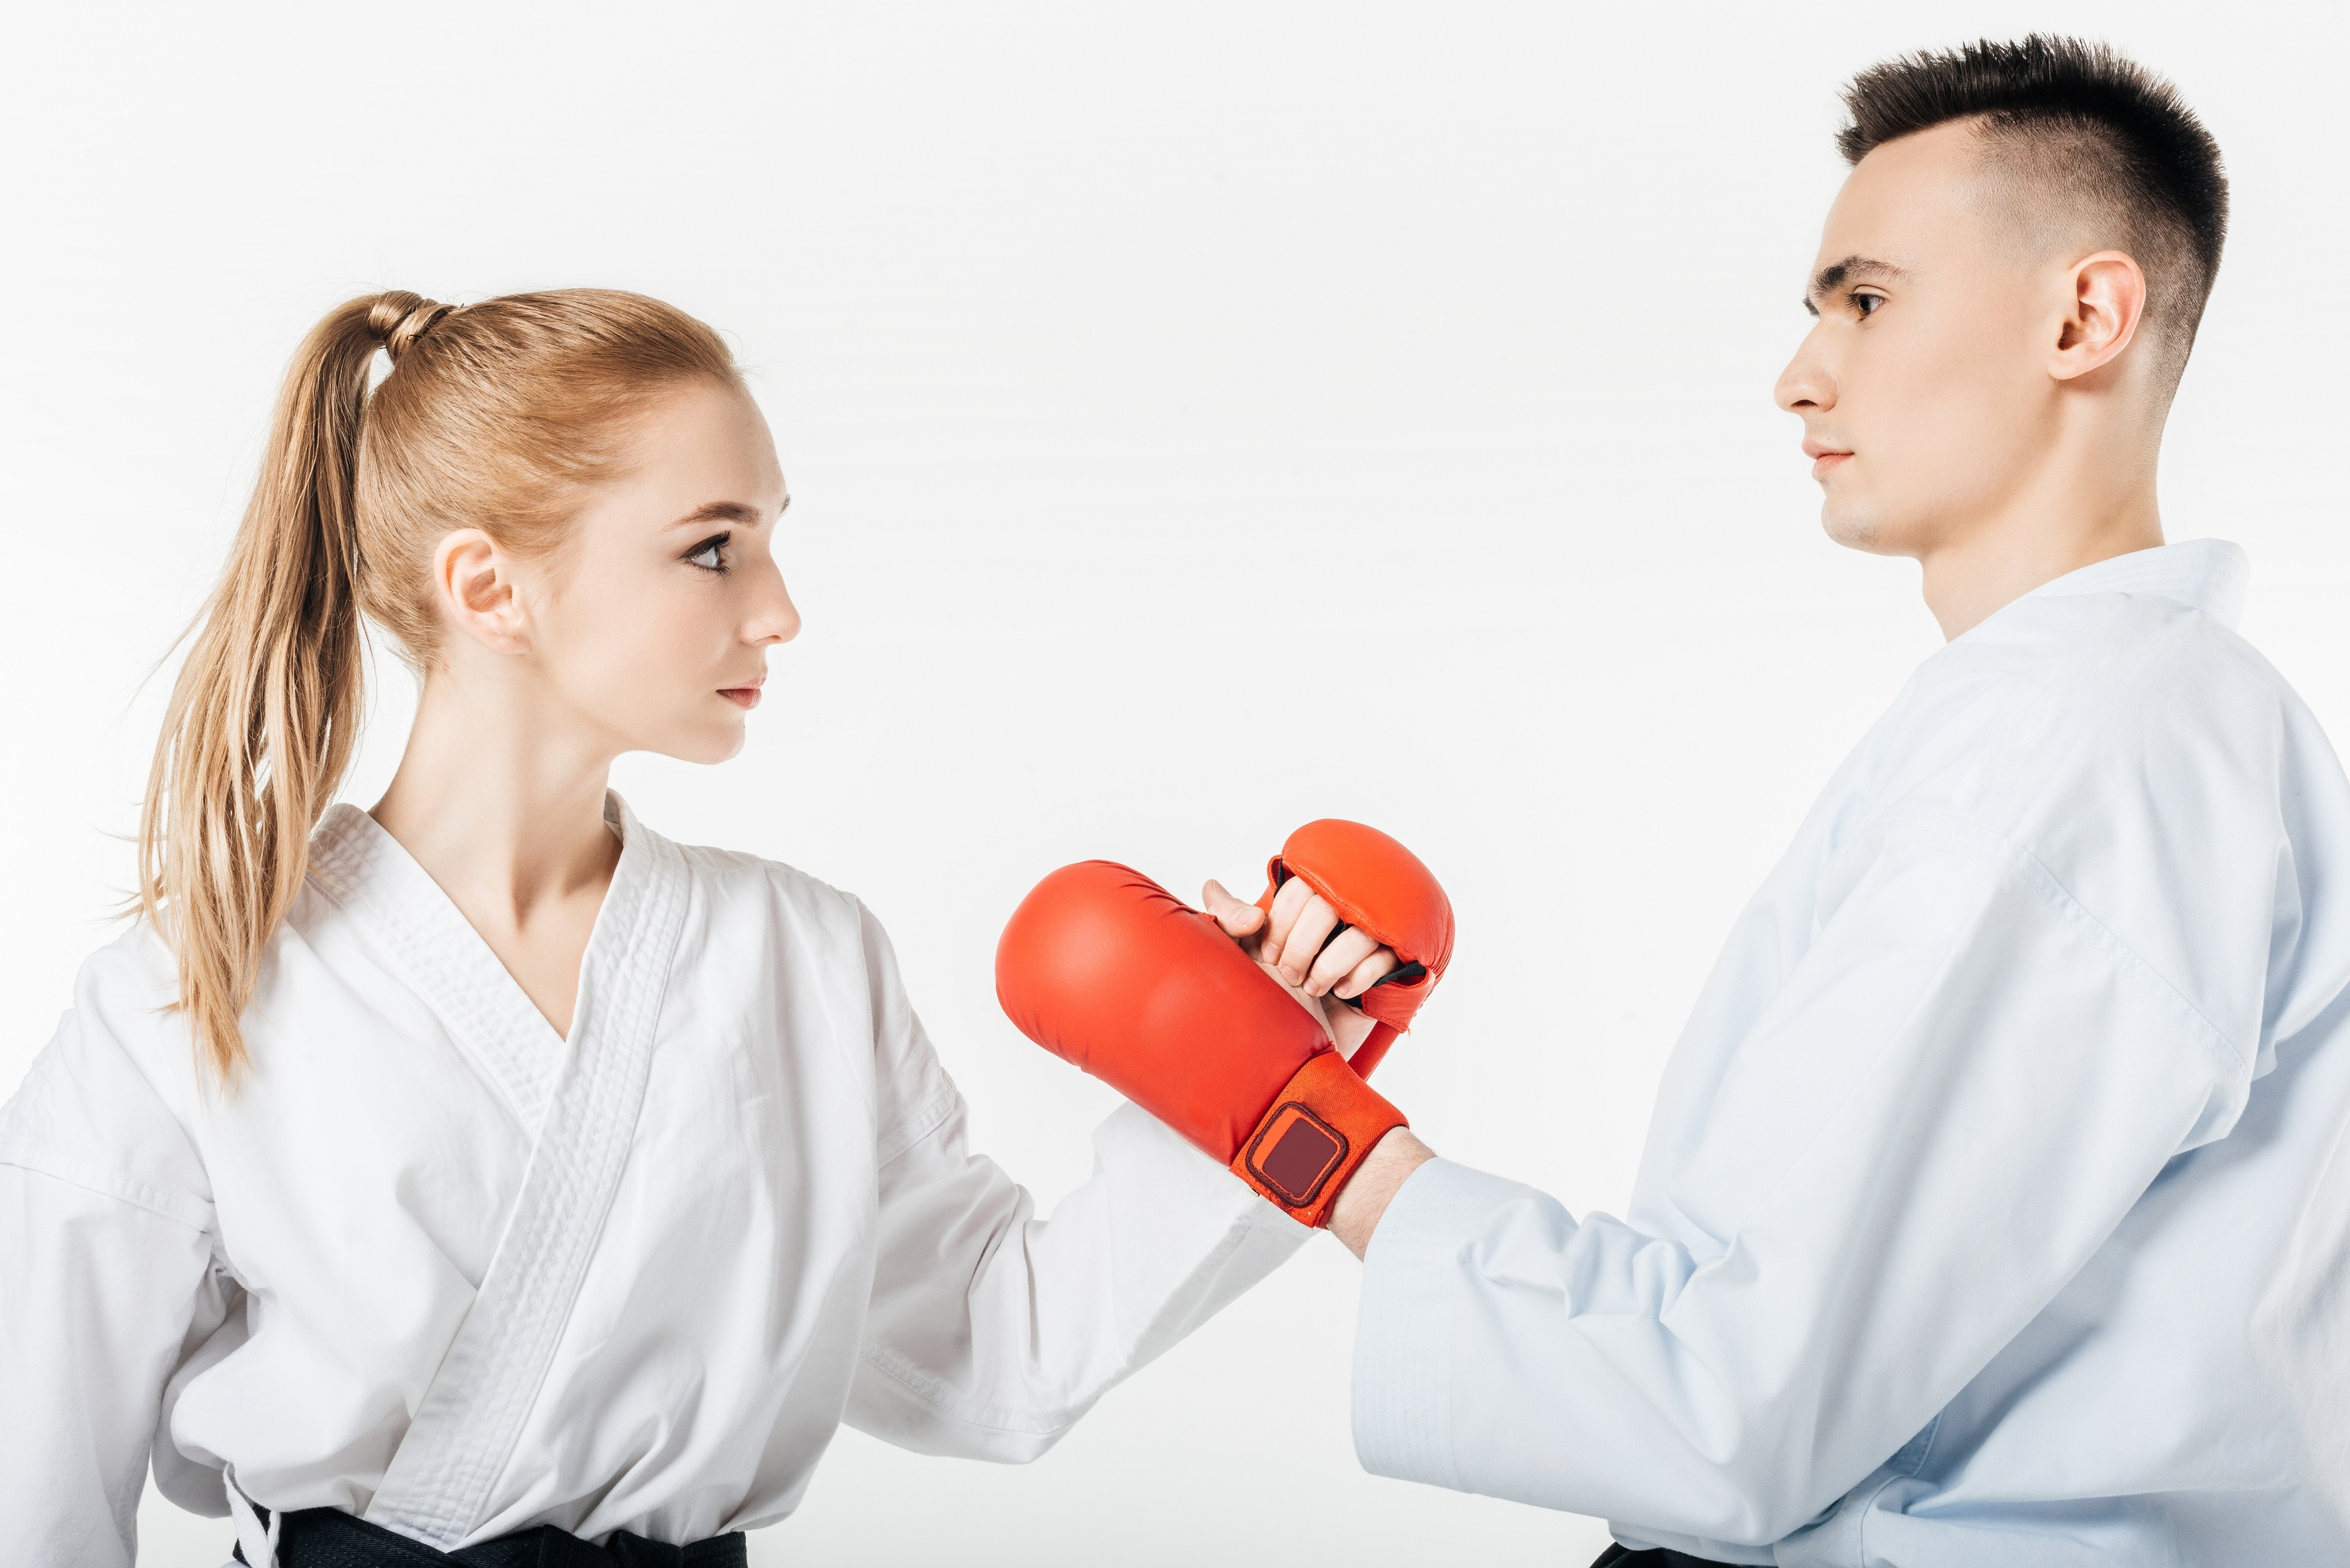 Karate sparring gear is important for fun and effective training!